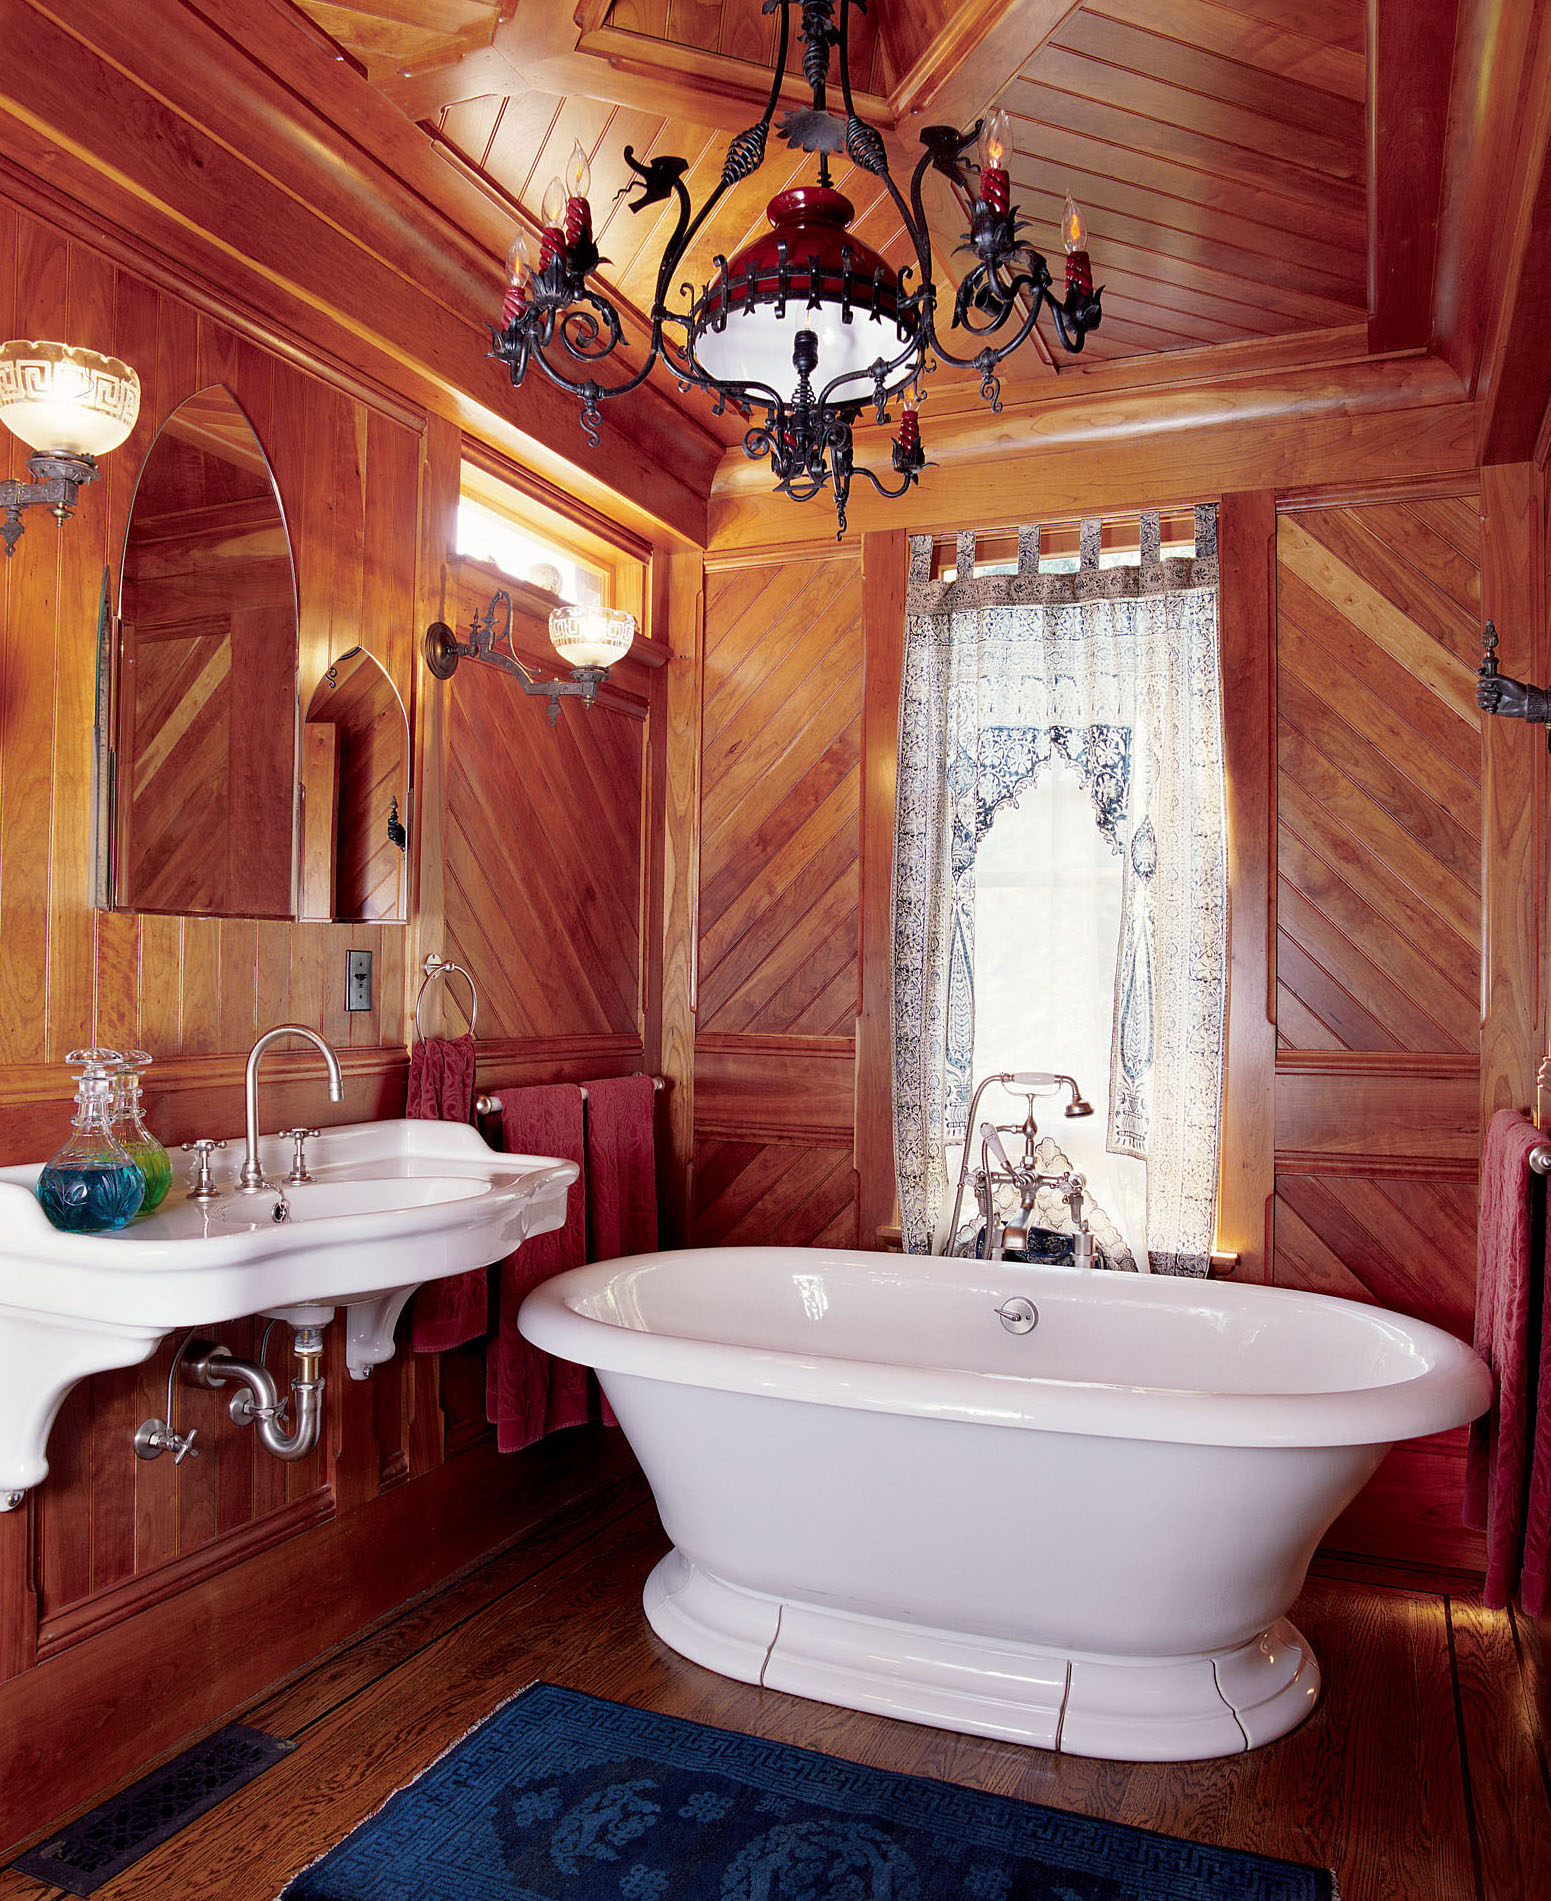 Designing The Victorian Bath For Today Old House Journal Magazine